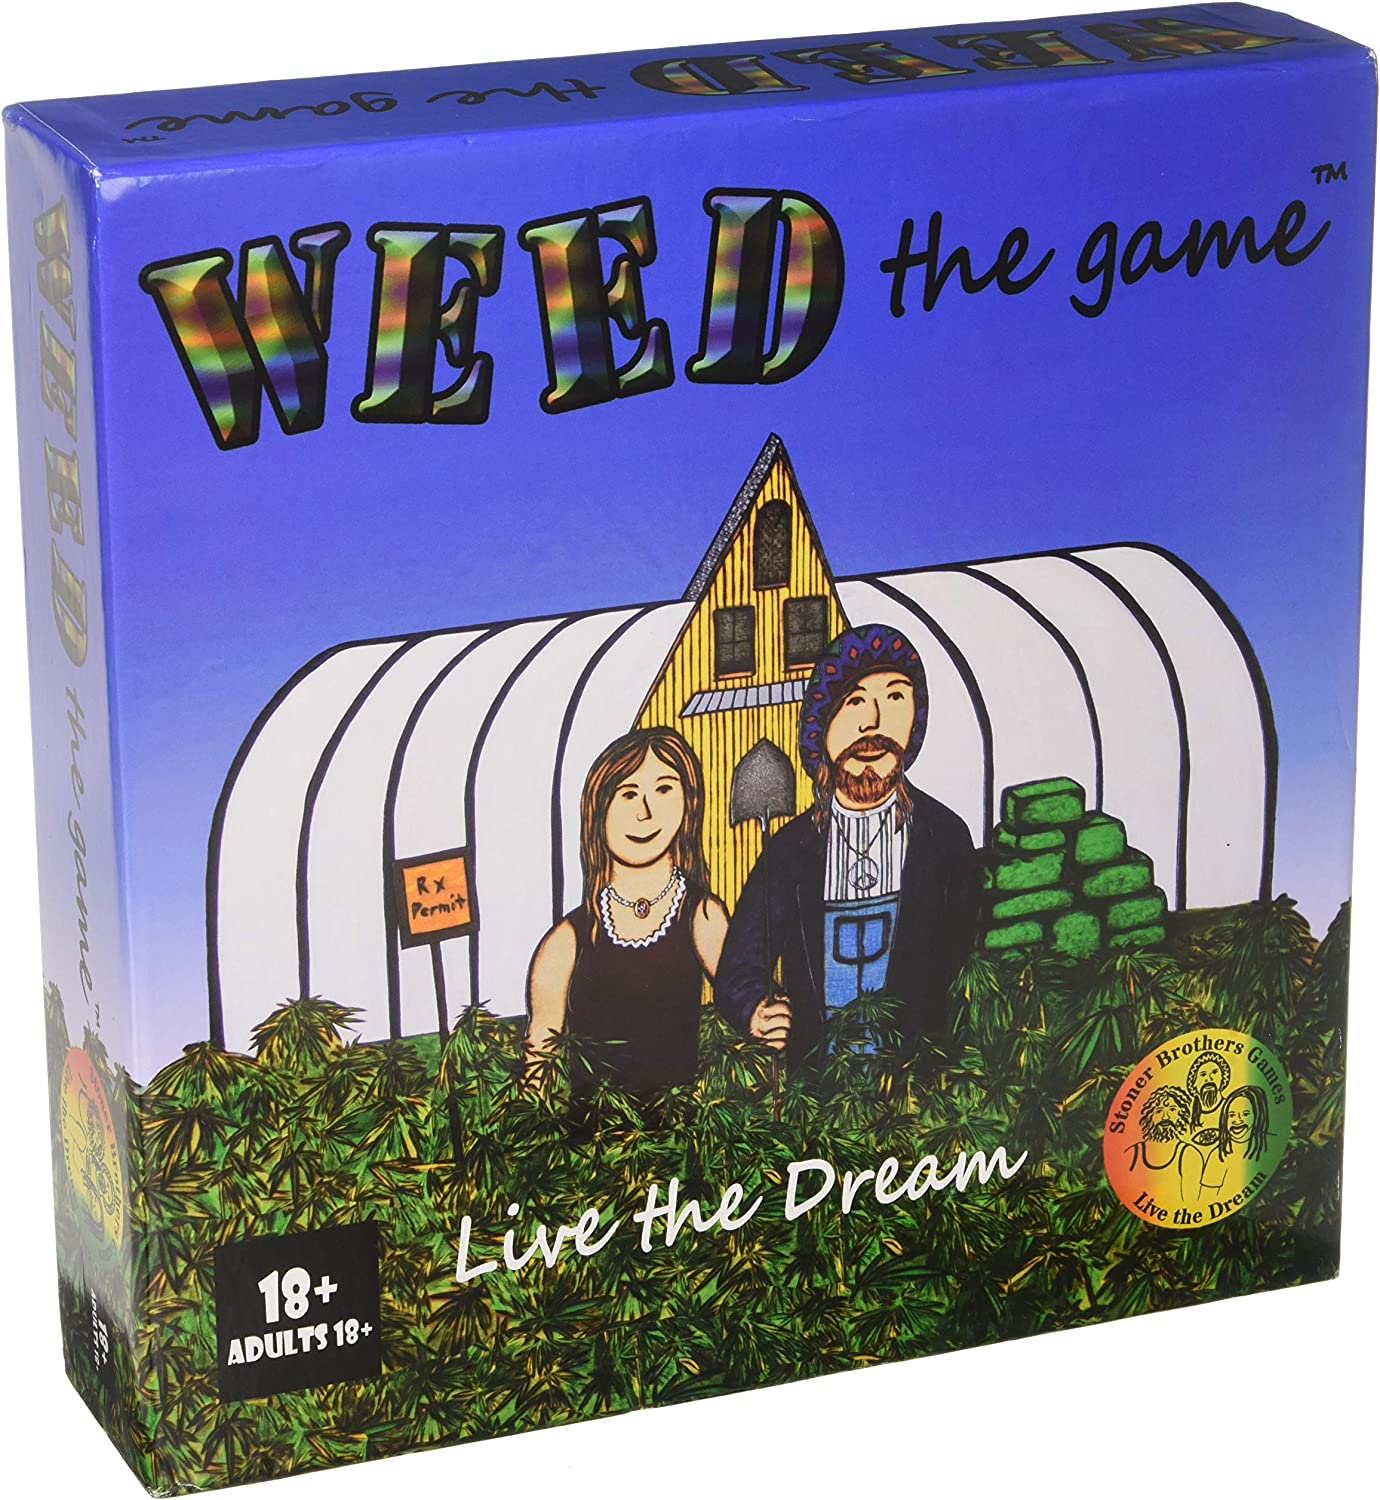 Stoner Brothers Weed The Game